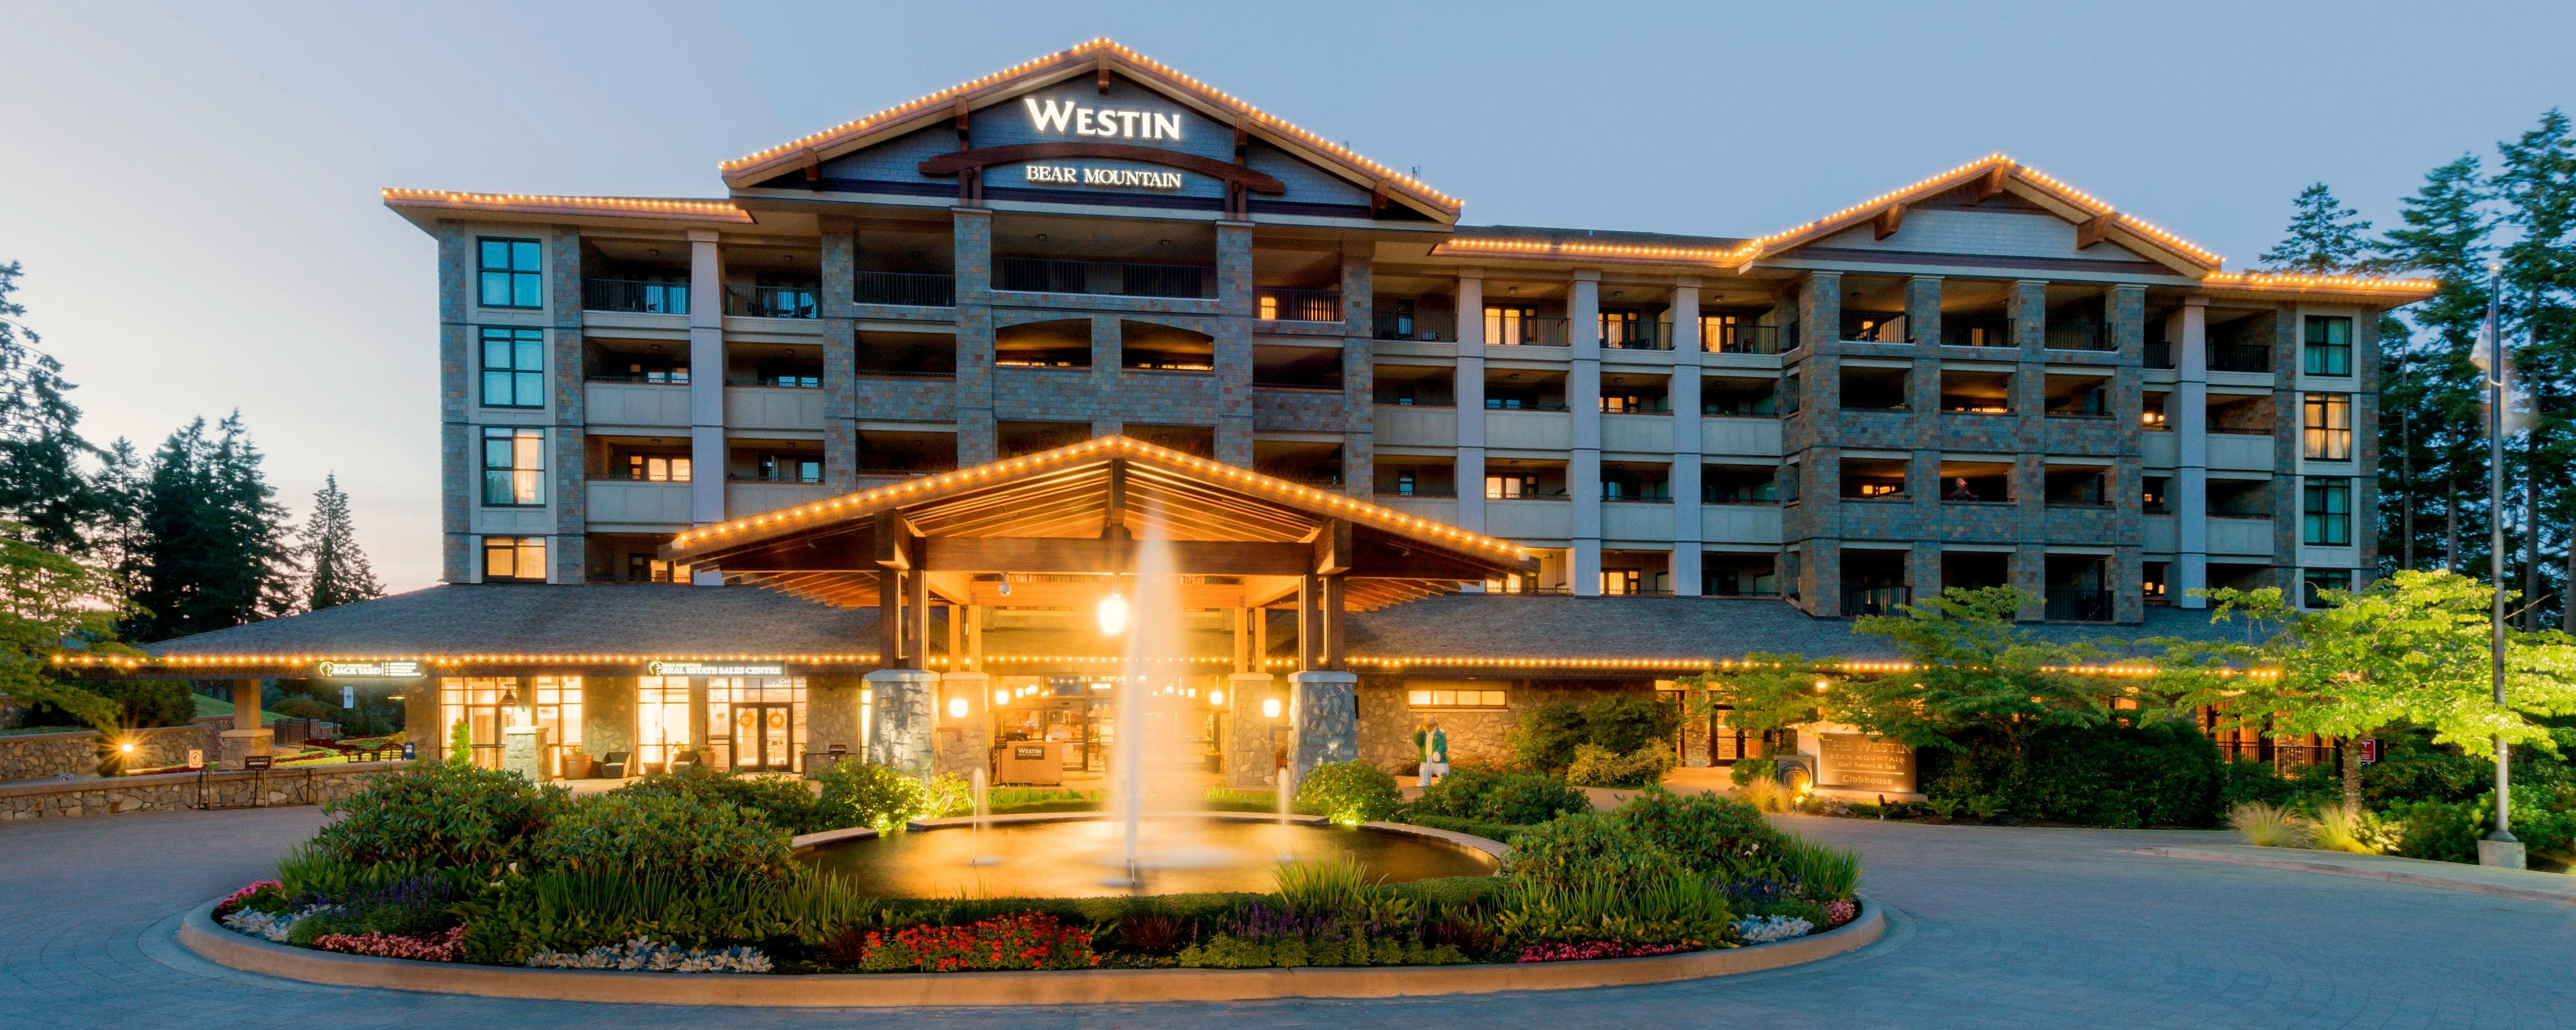 Wellness hotel in victoria the westin bear mountain golf resort